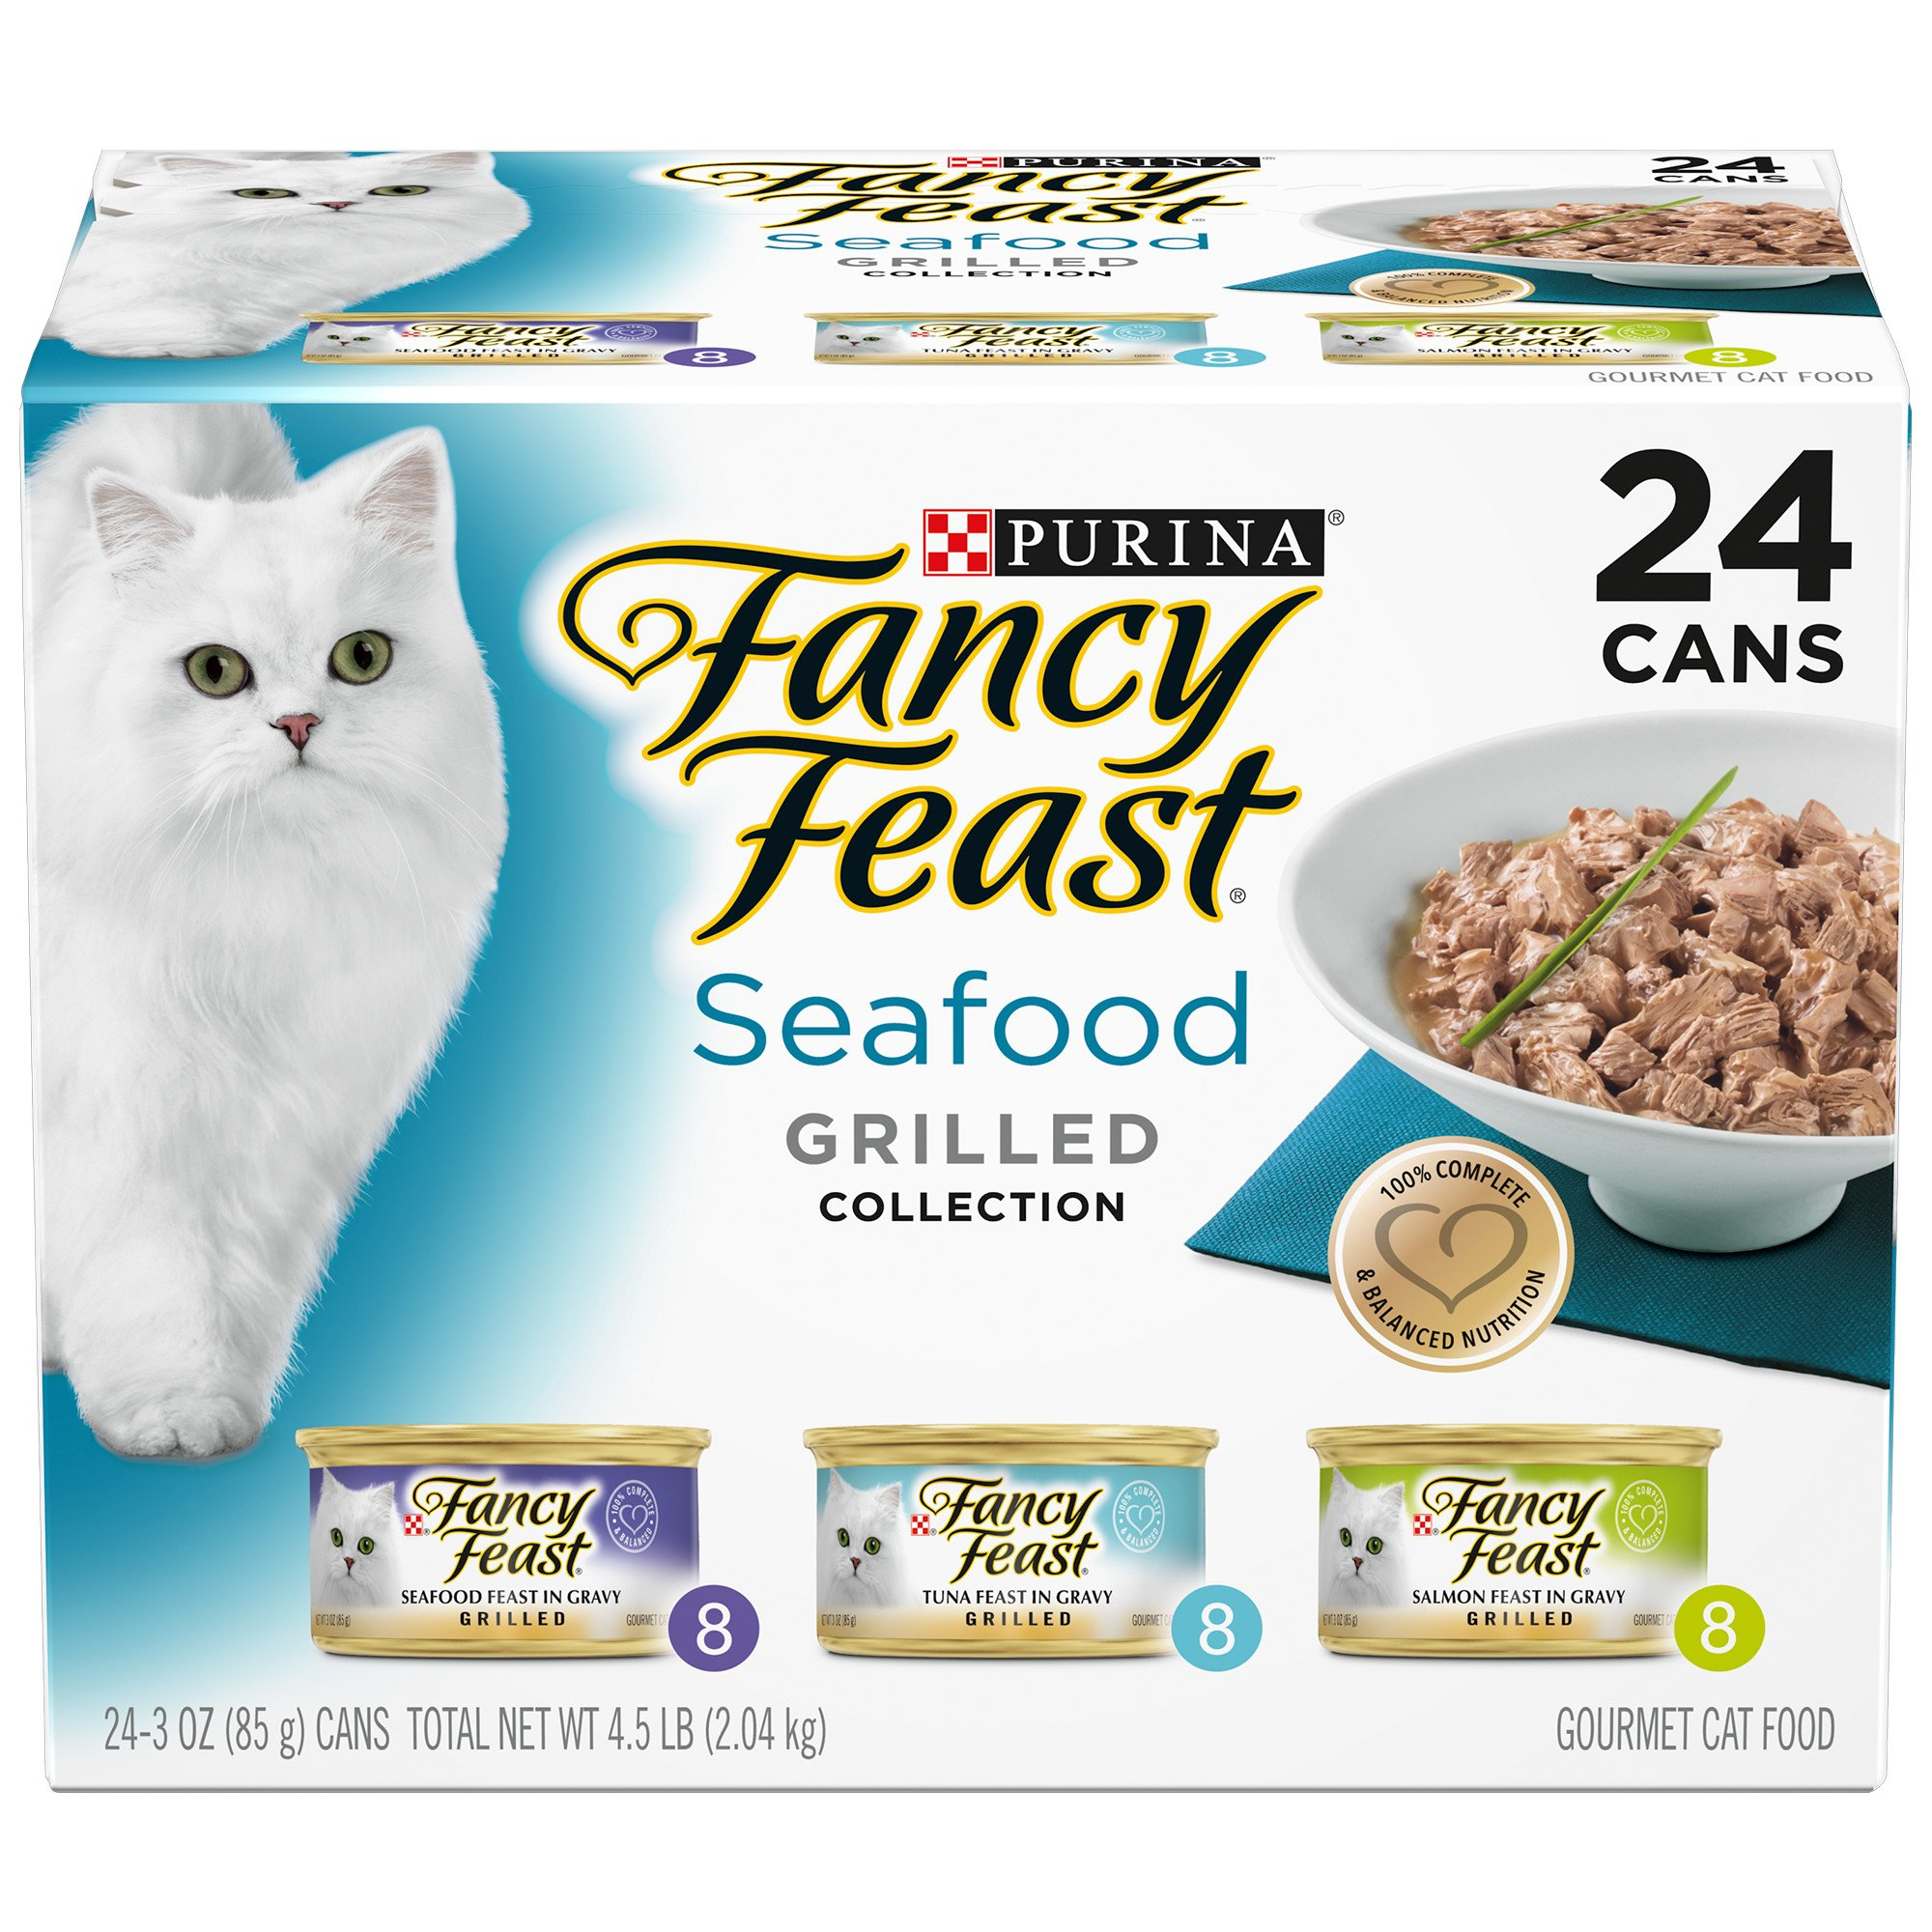 Purina Fancy Feast Seafood Grilled Collection Variety Pack Gravy Wet Cat Food, 3 oz., Count of 24, Can